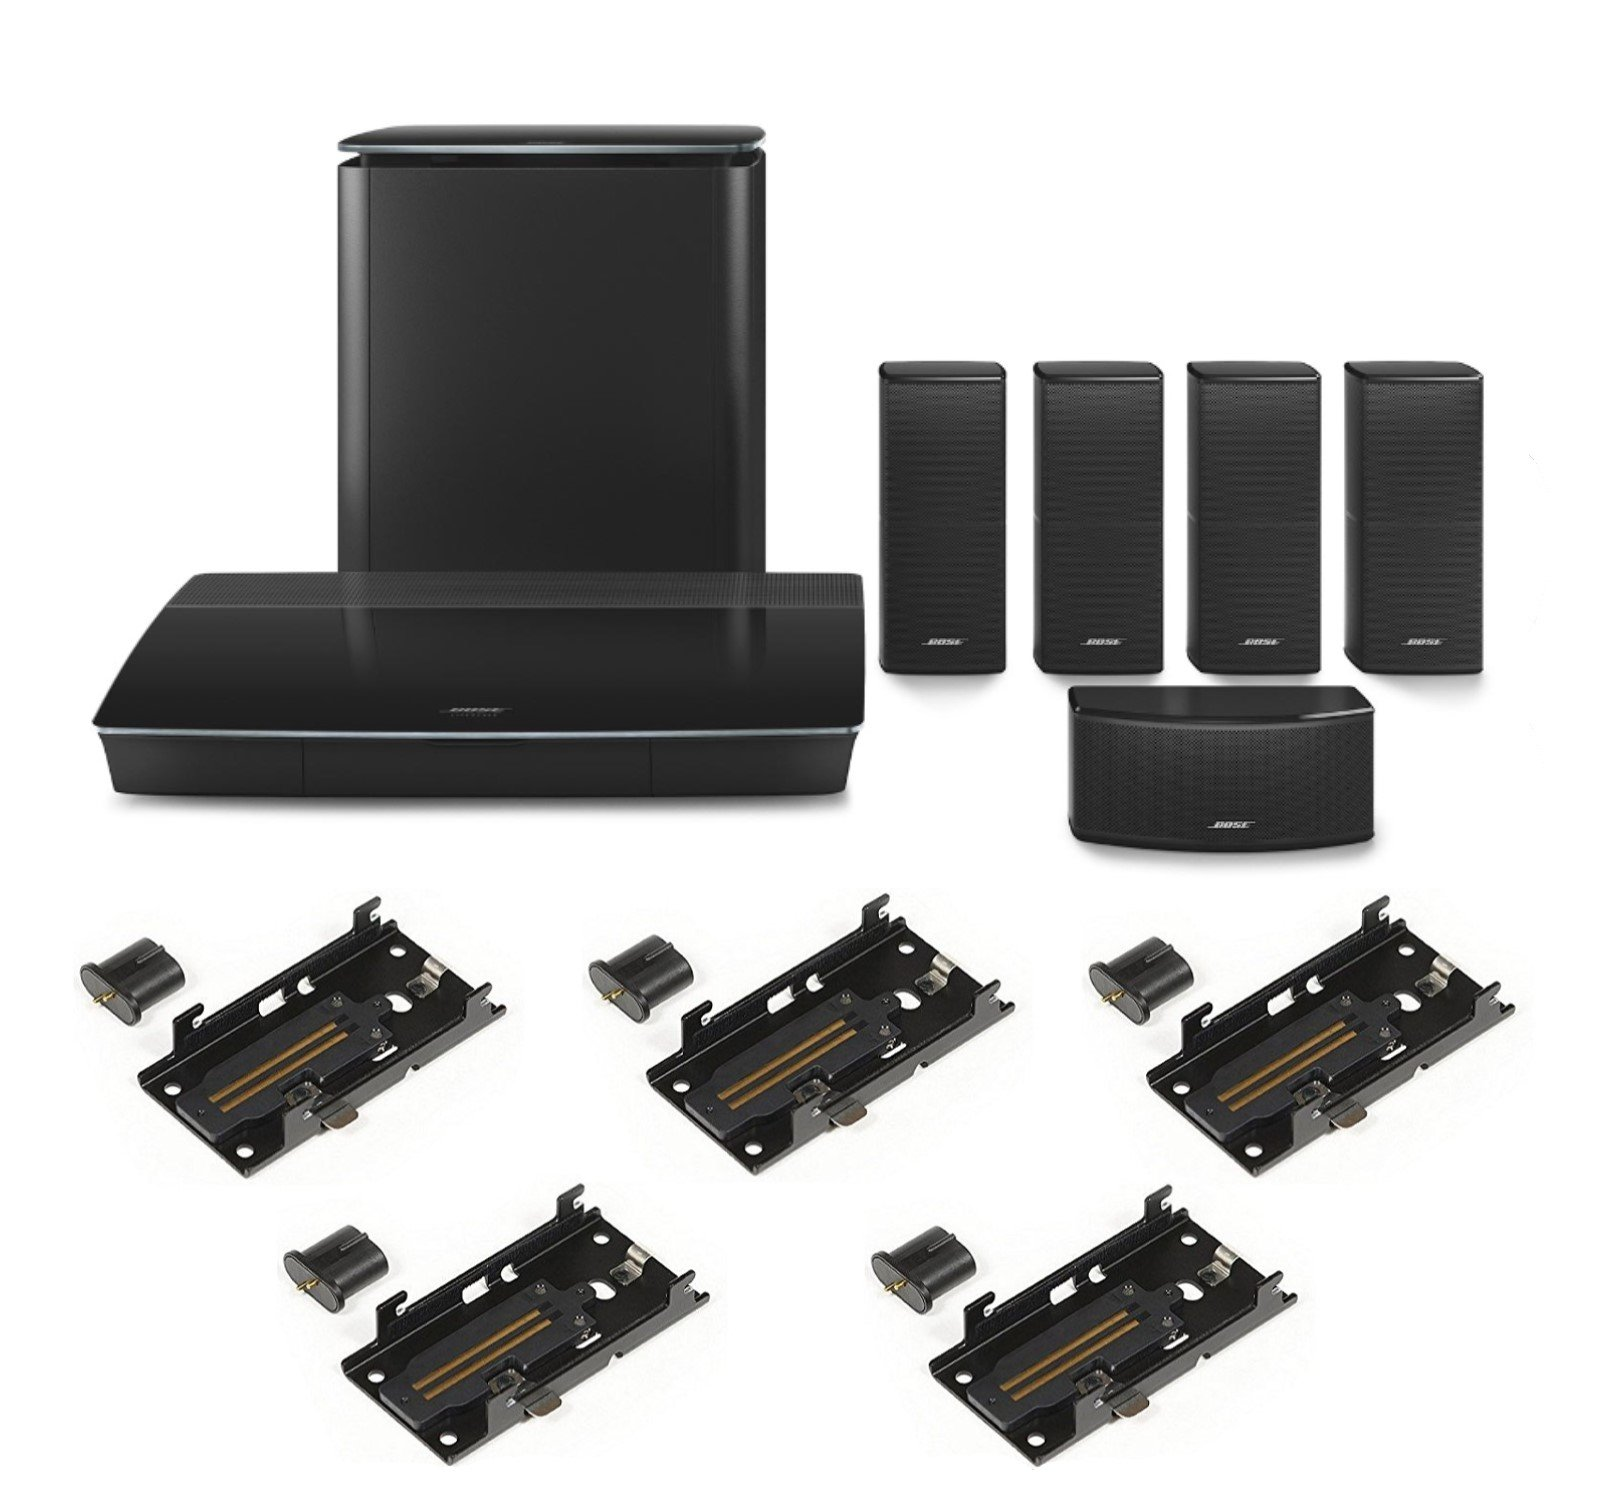 Bose LifeStyle 600 Home Entertainment System & SLIDECONNECT WB50 Wall Mount Kit Bundle, Black by Bose